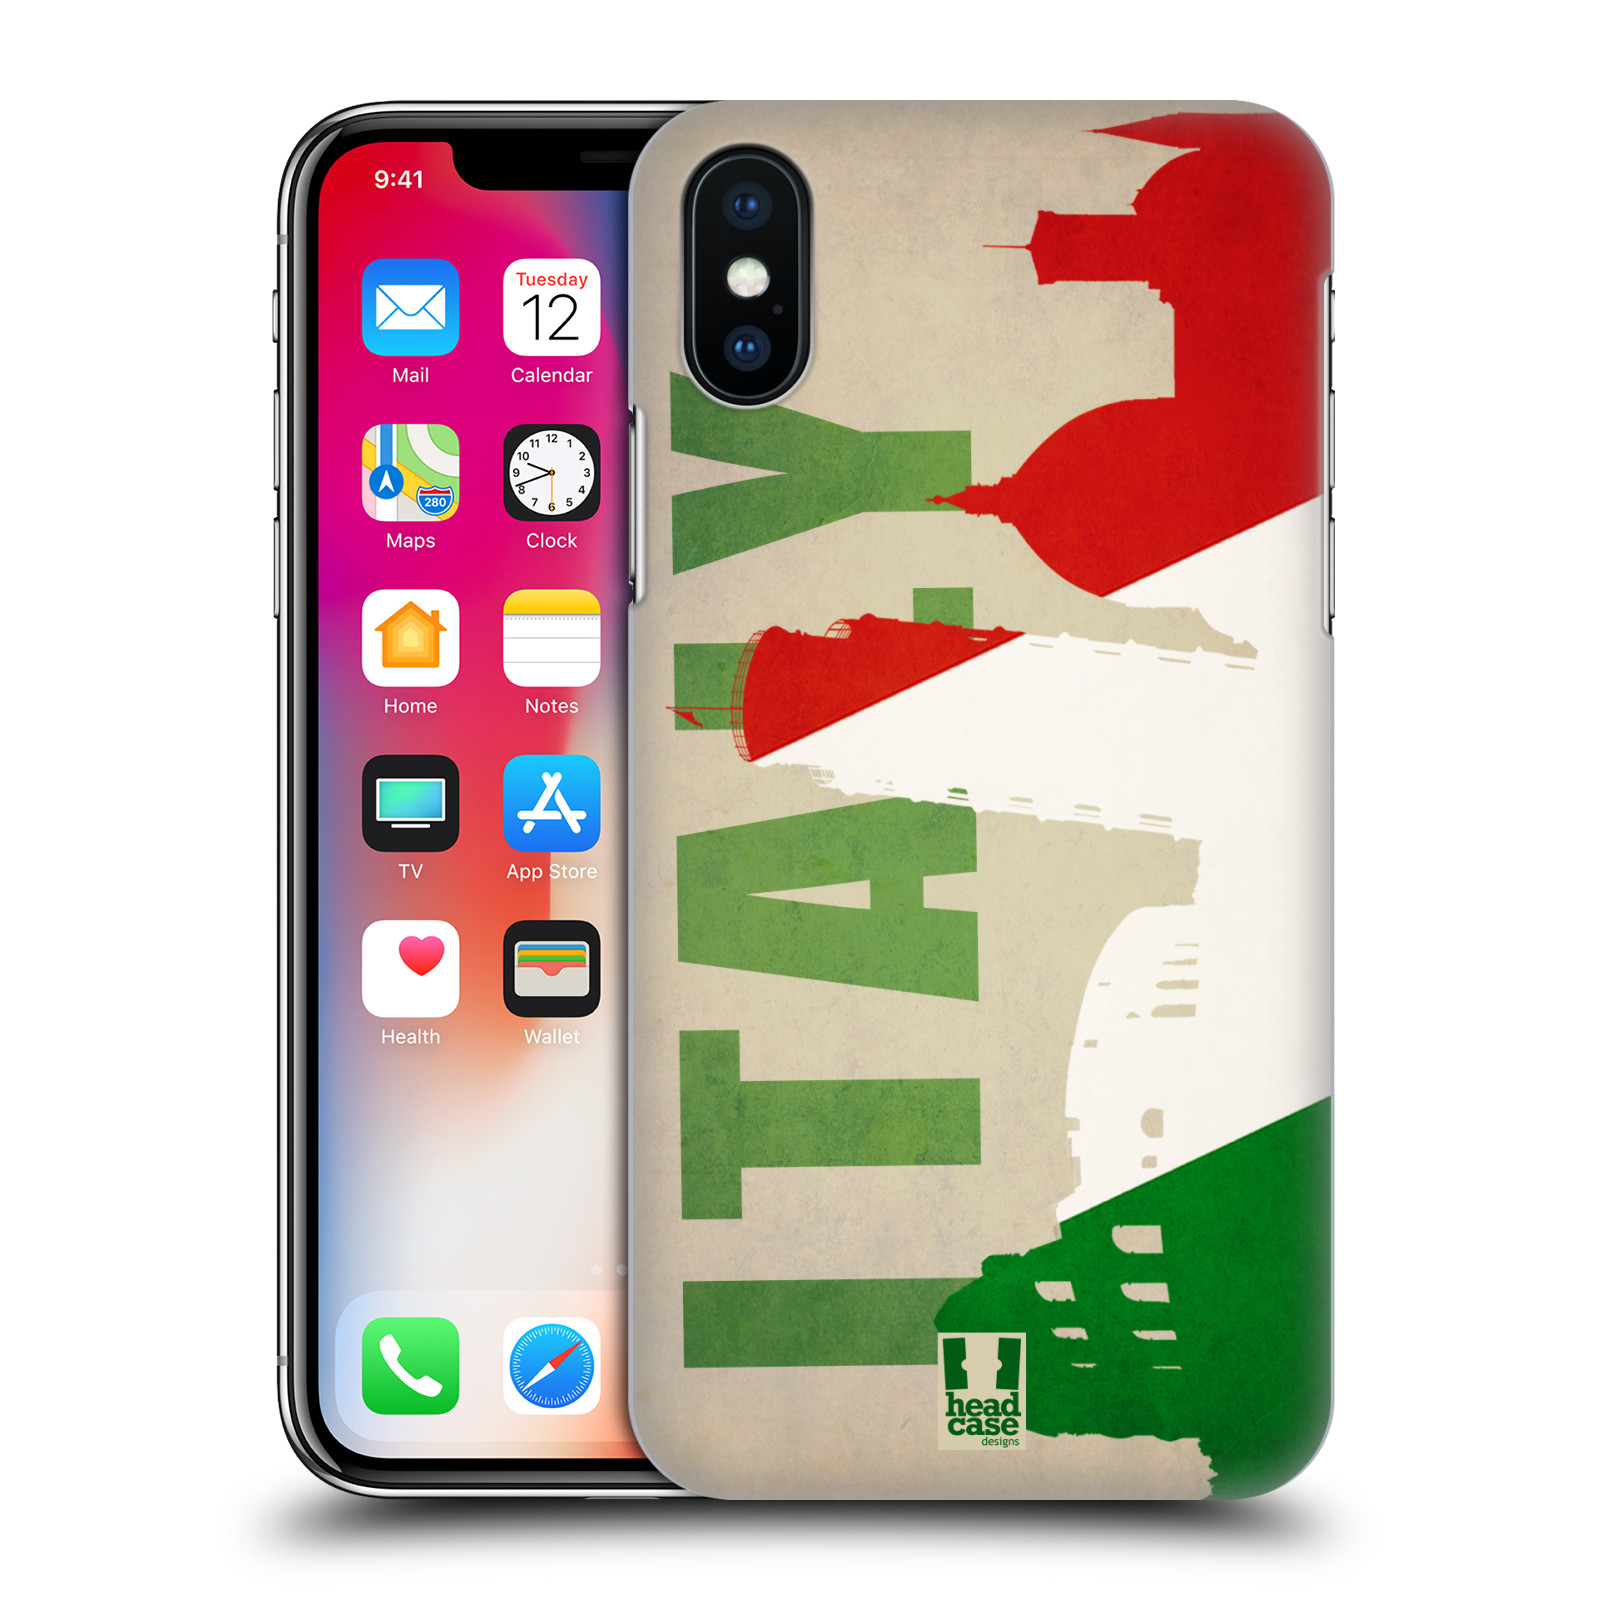 HEAD-CASE-DESIGNS-BANDIERE-E-MONUMENTI-COVER-RETRO-PER-APPLE-iPHONE-TELEFONI